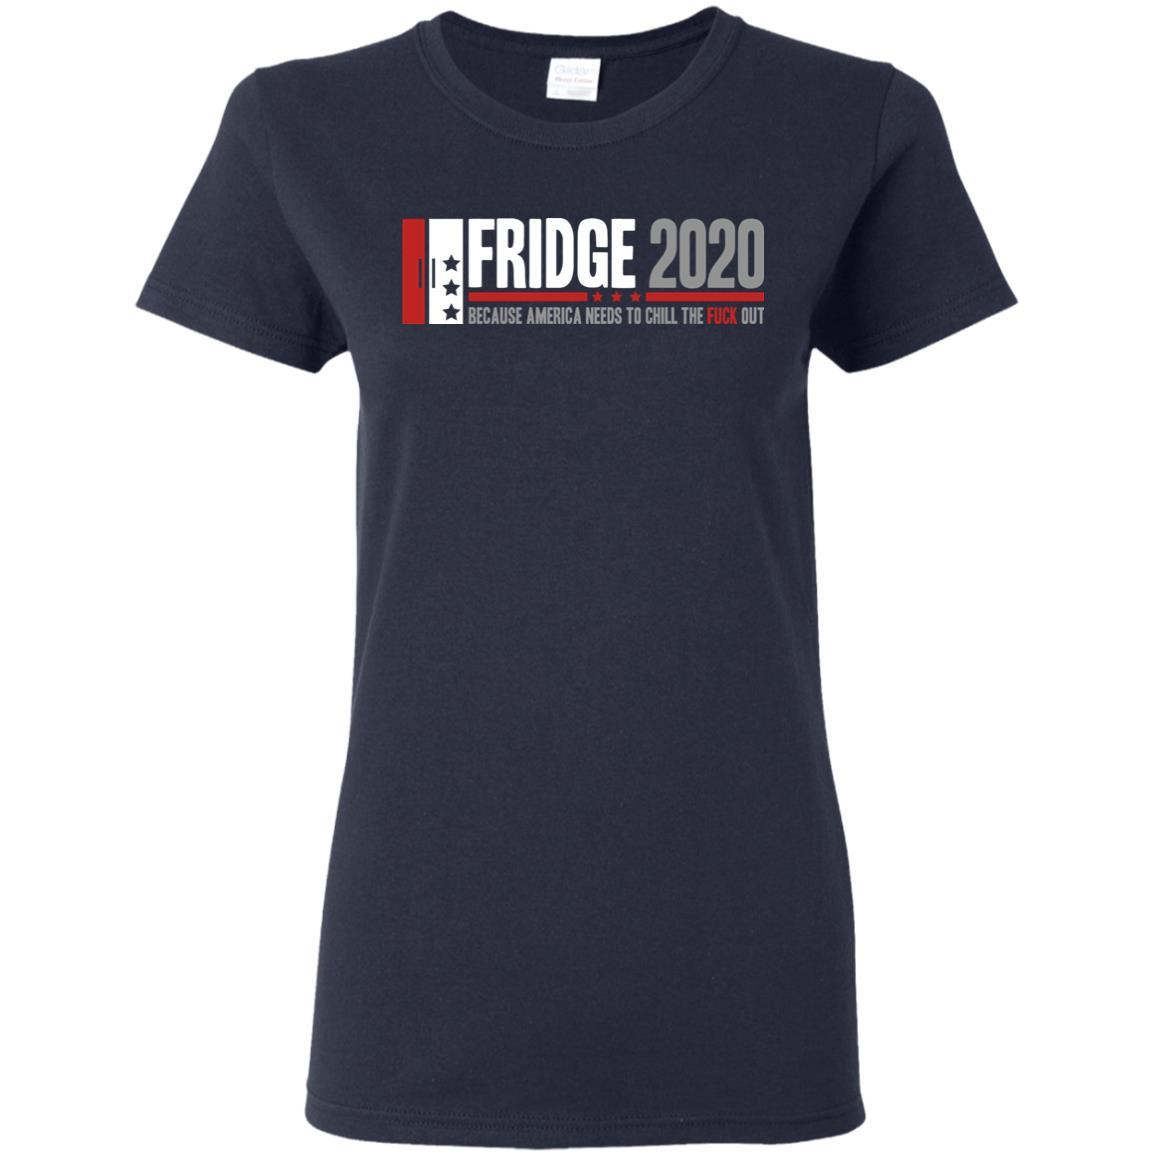 T-Shirts - Fridge 2020 Ladies Tee